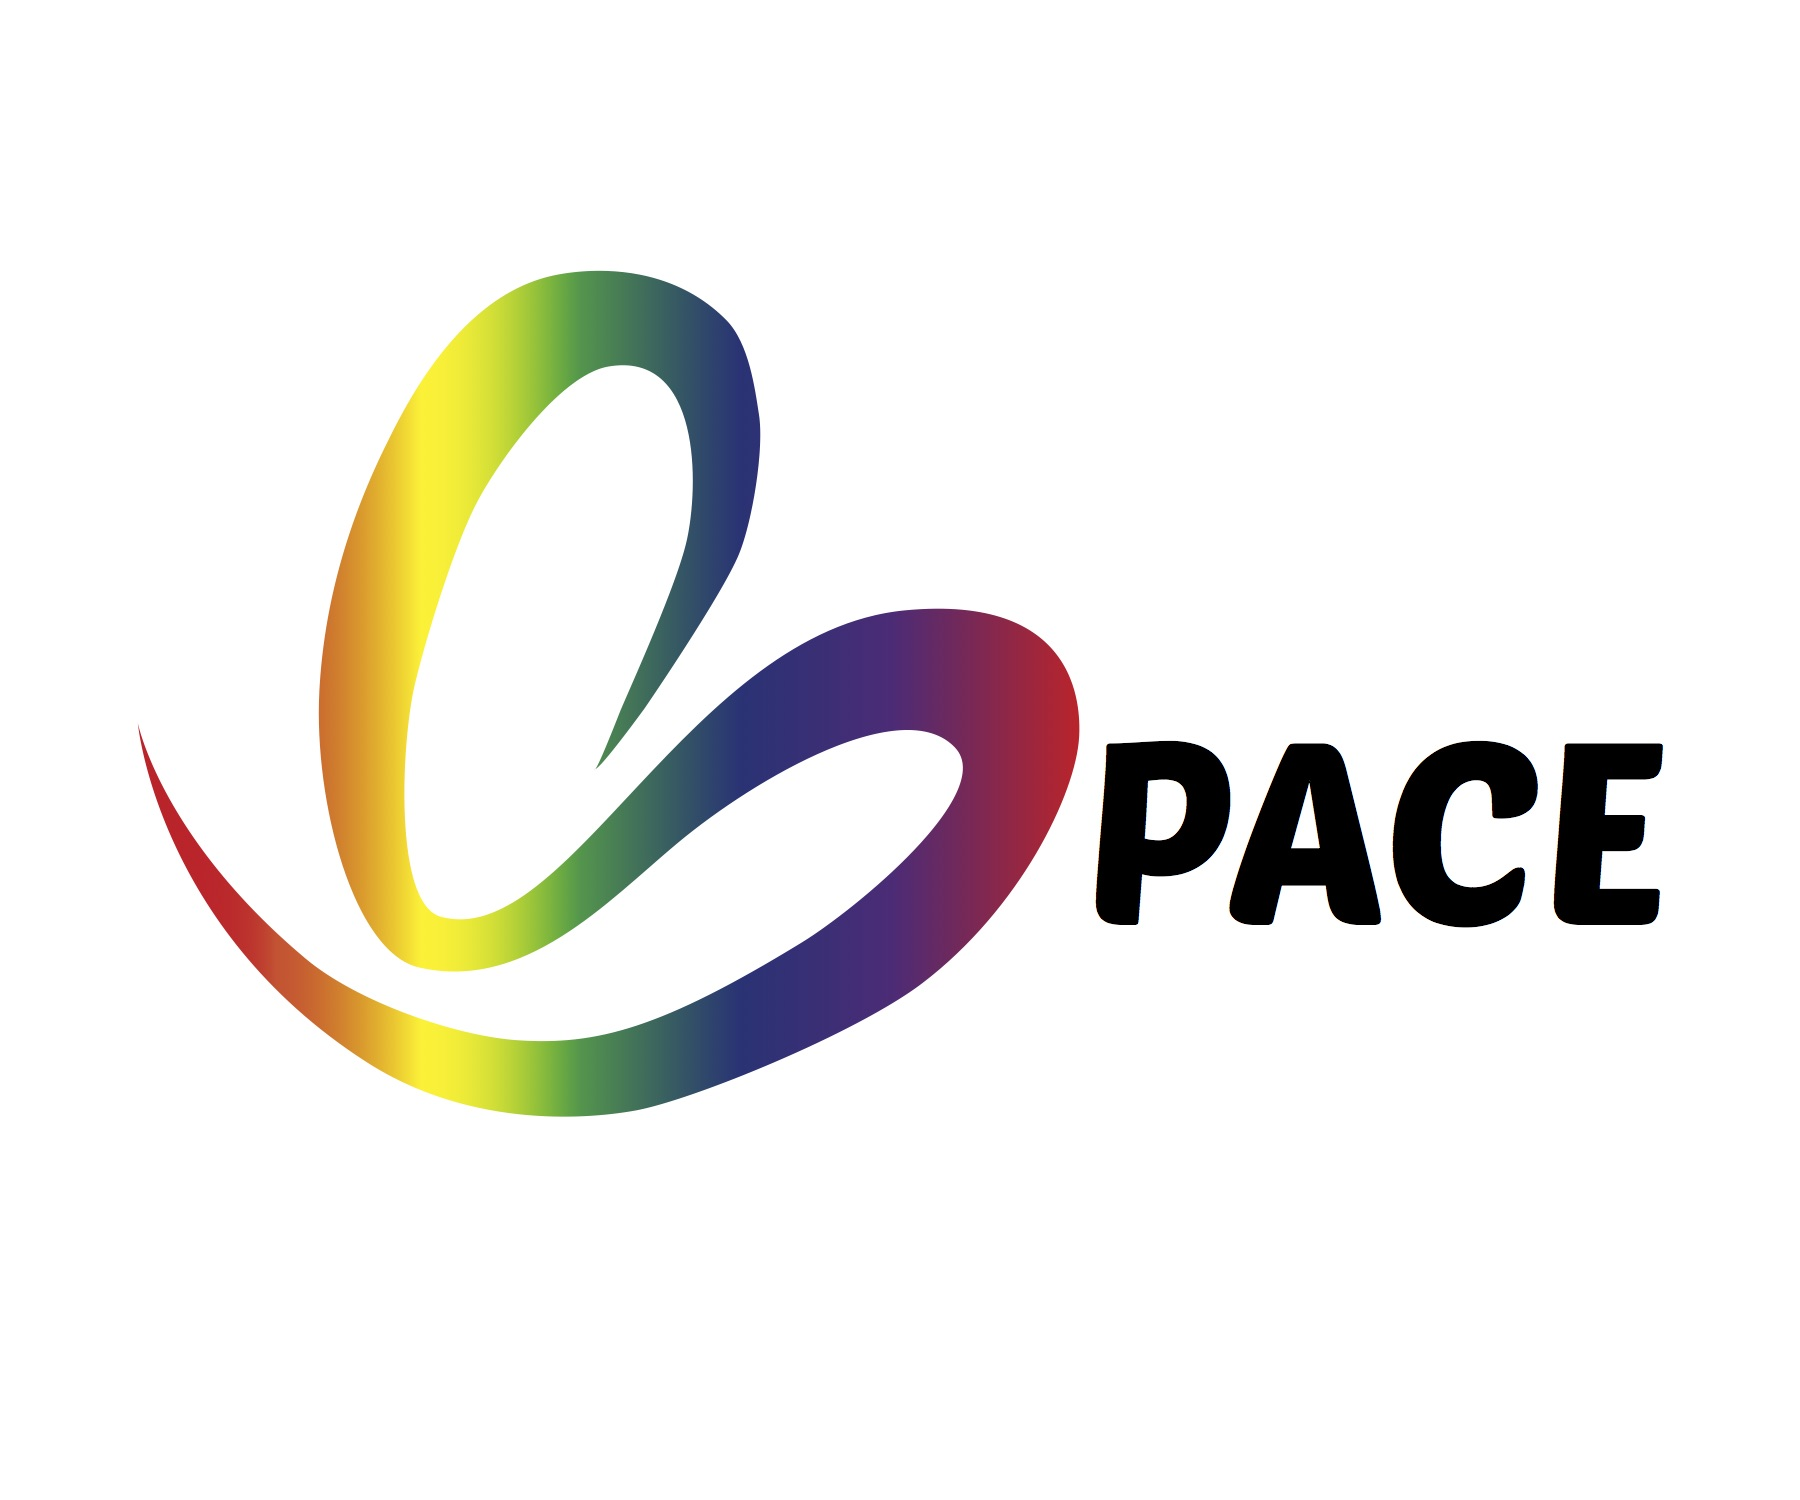 SPACE - SPACE is a once-weekly youth group for LGBT2S youth & allies. Located in Kenora. For more info, email kenoraspace@gmail.com or call (807) 464-4918.